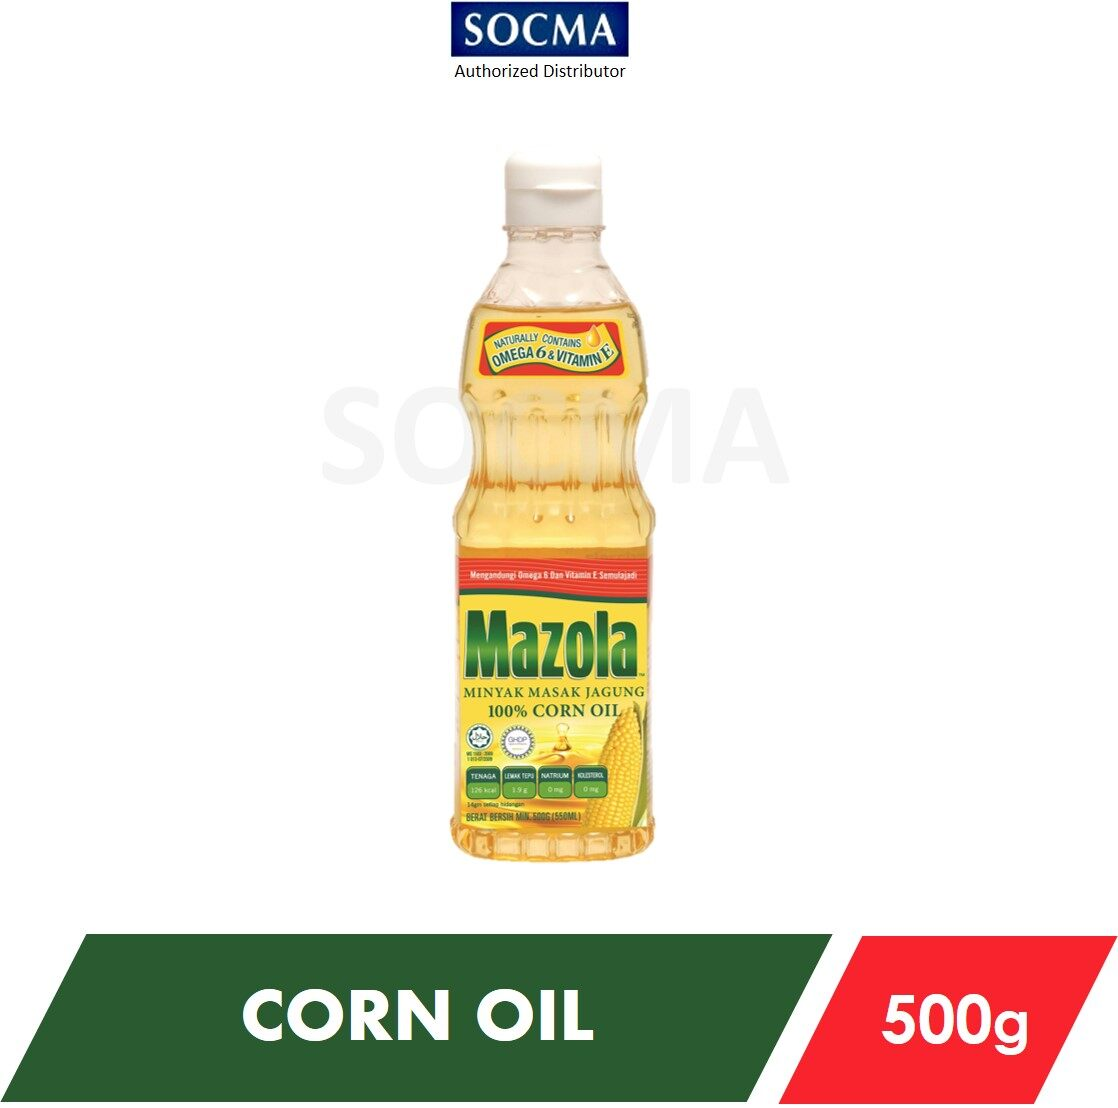 Mazola Corn Oil 500g [1]